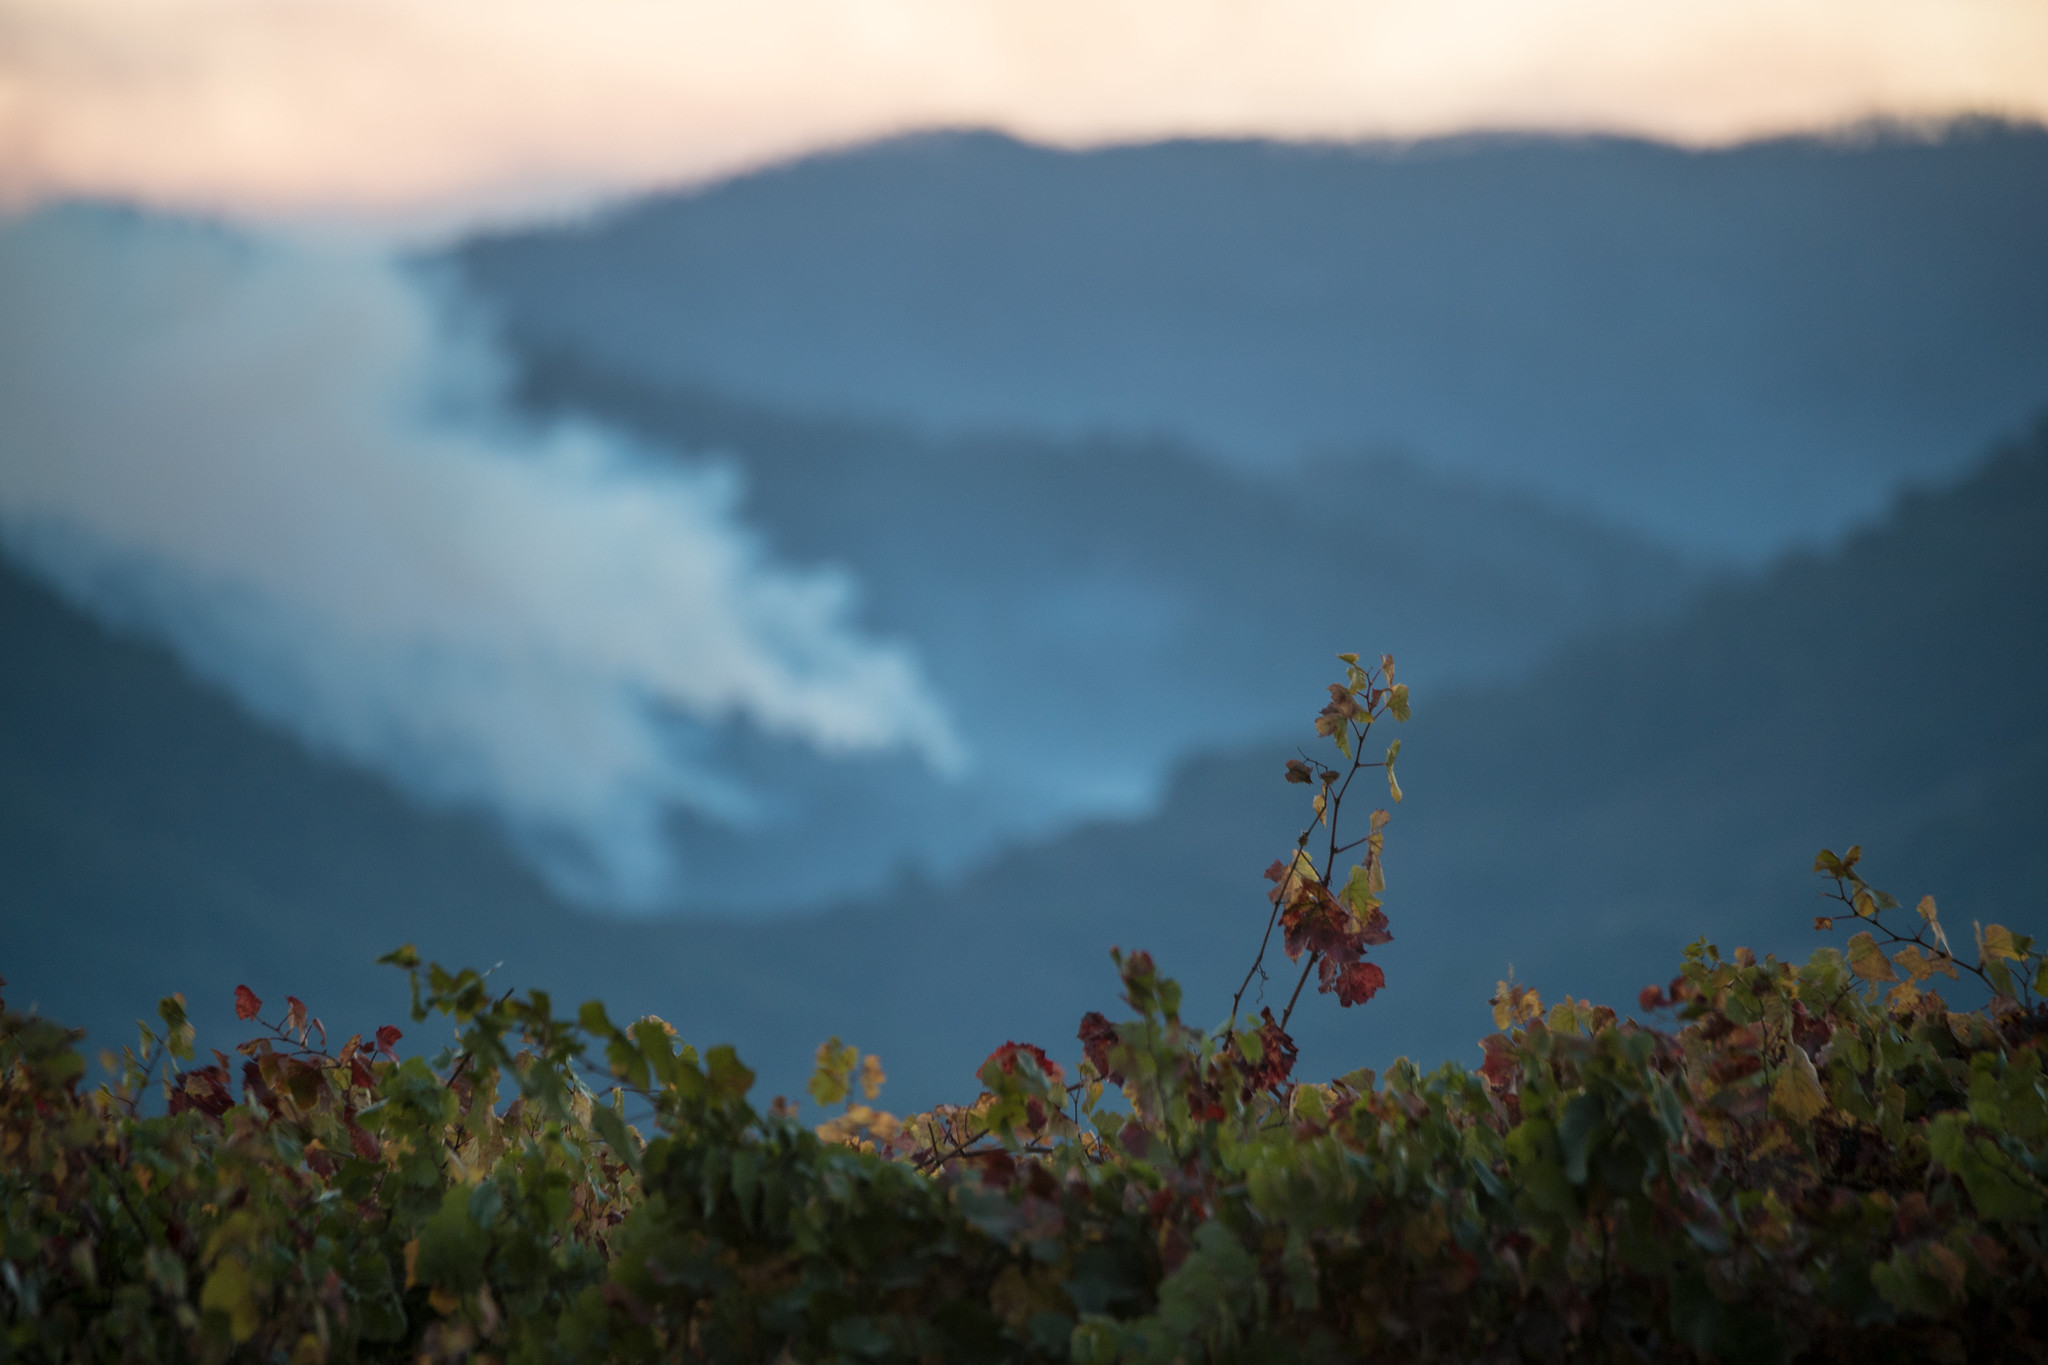 Smoke rises in a valley behind a vineyard